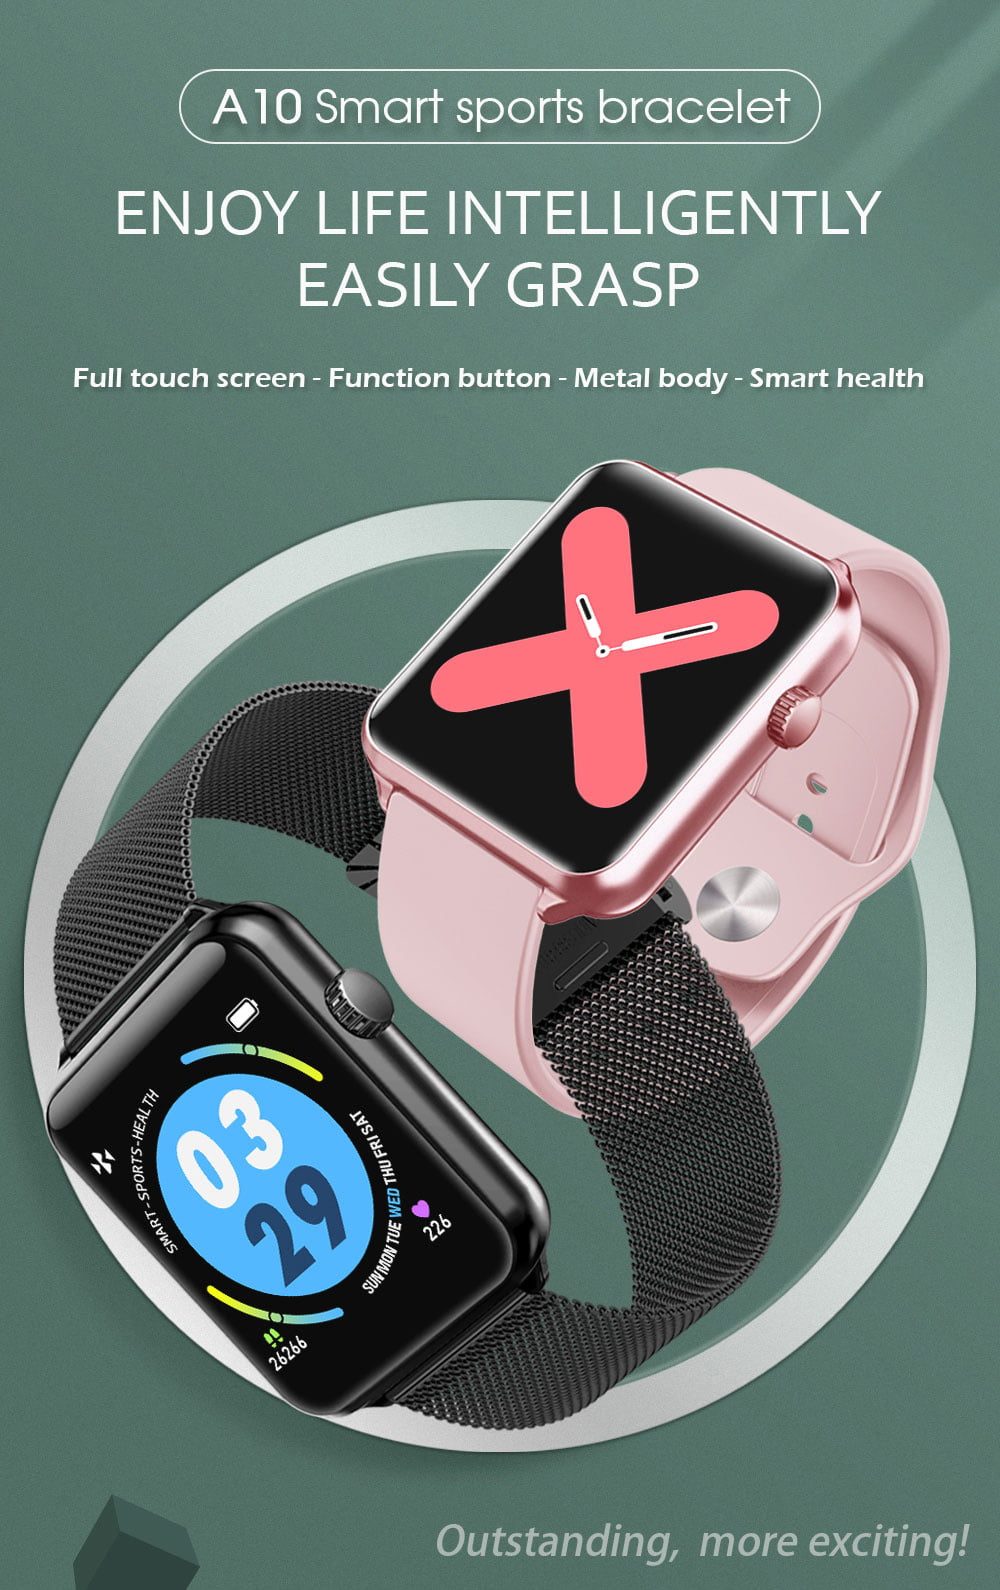 A10 1.3 inch full touch screen wristband (1)